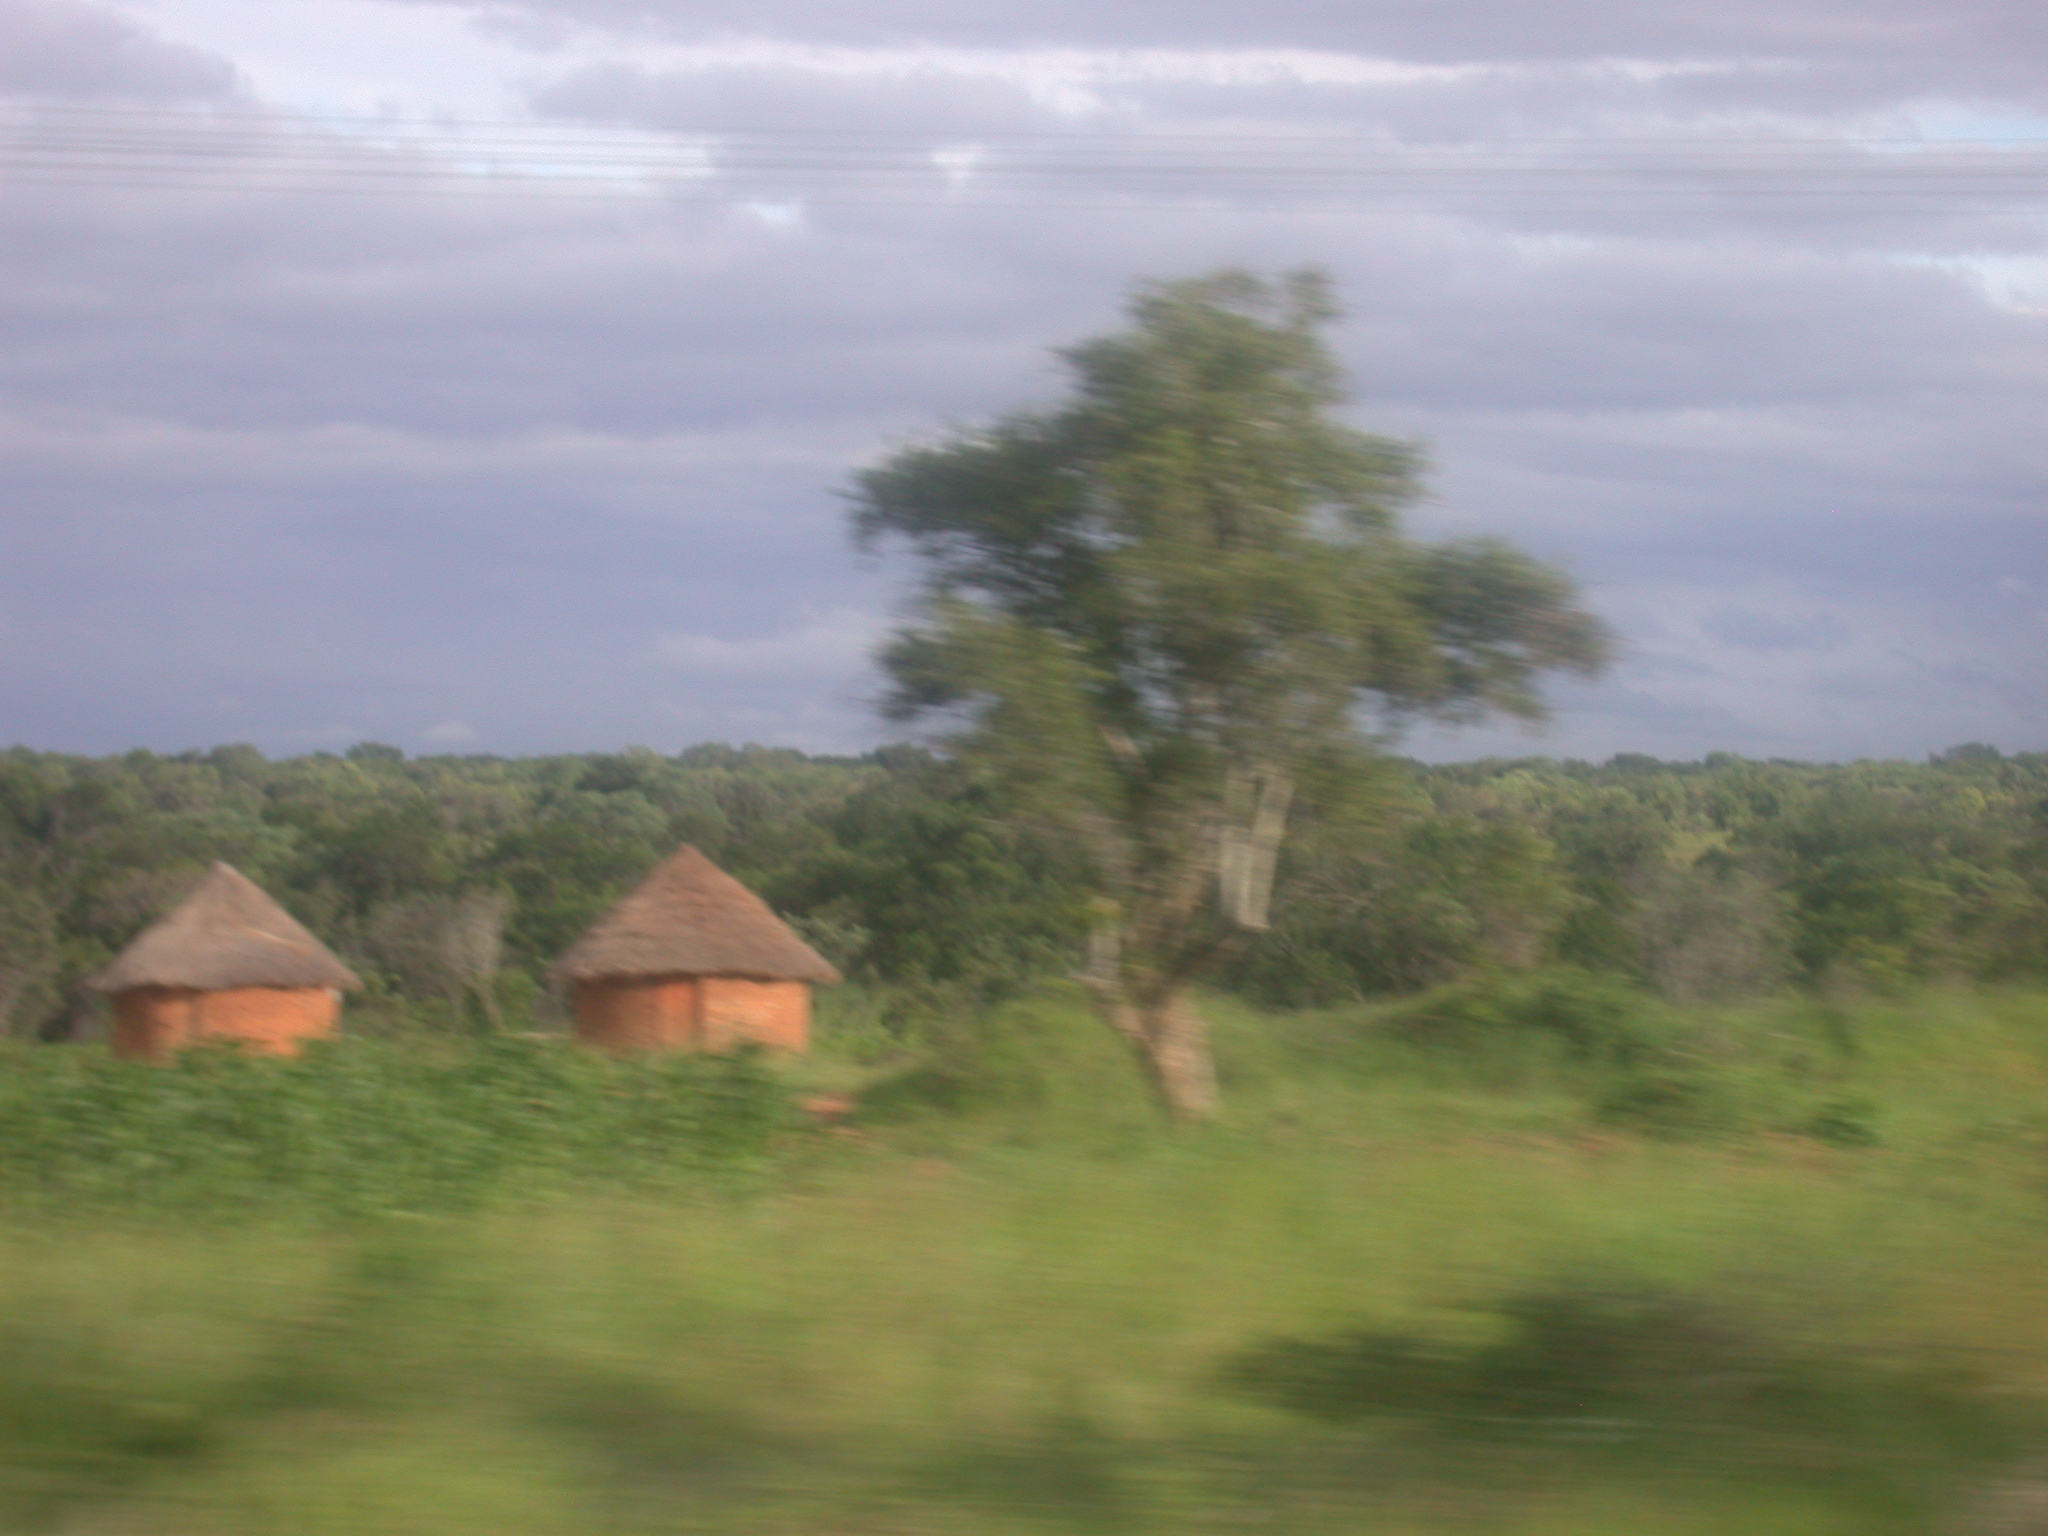 Landscaping Zimbabwe : Landscape and cone on cylinder buildings between harare masvingo